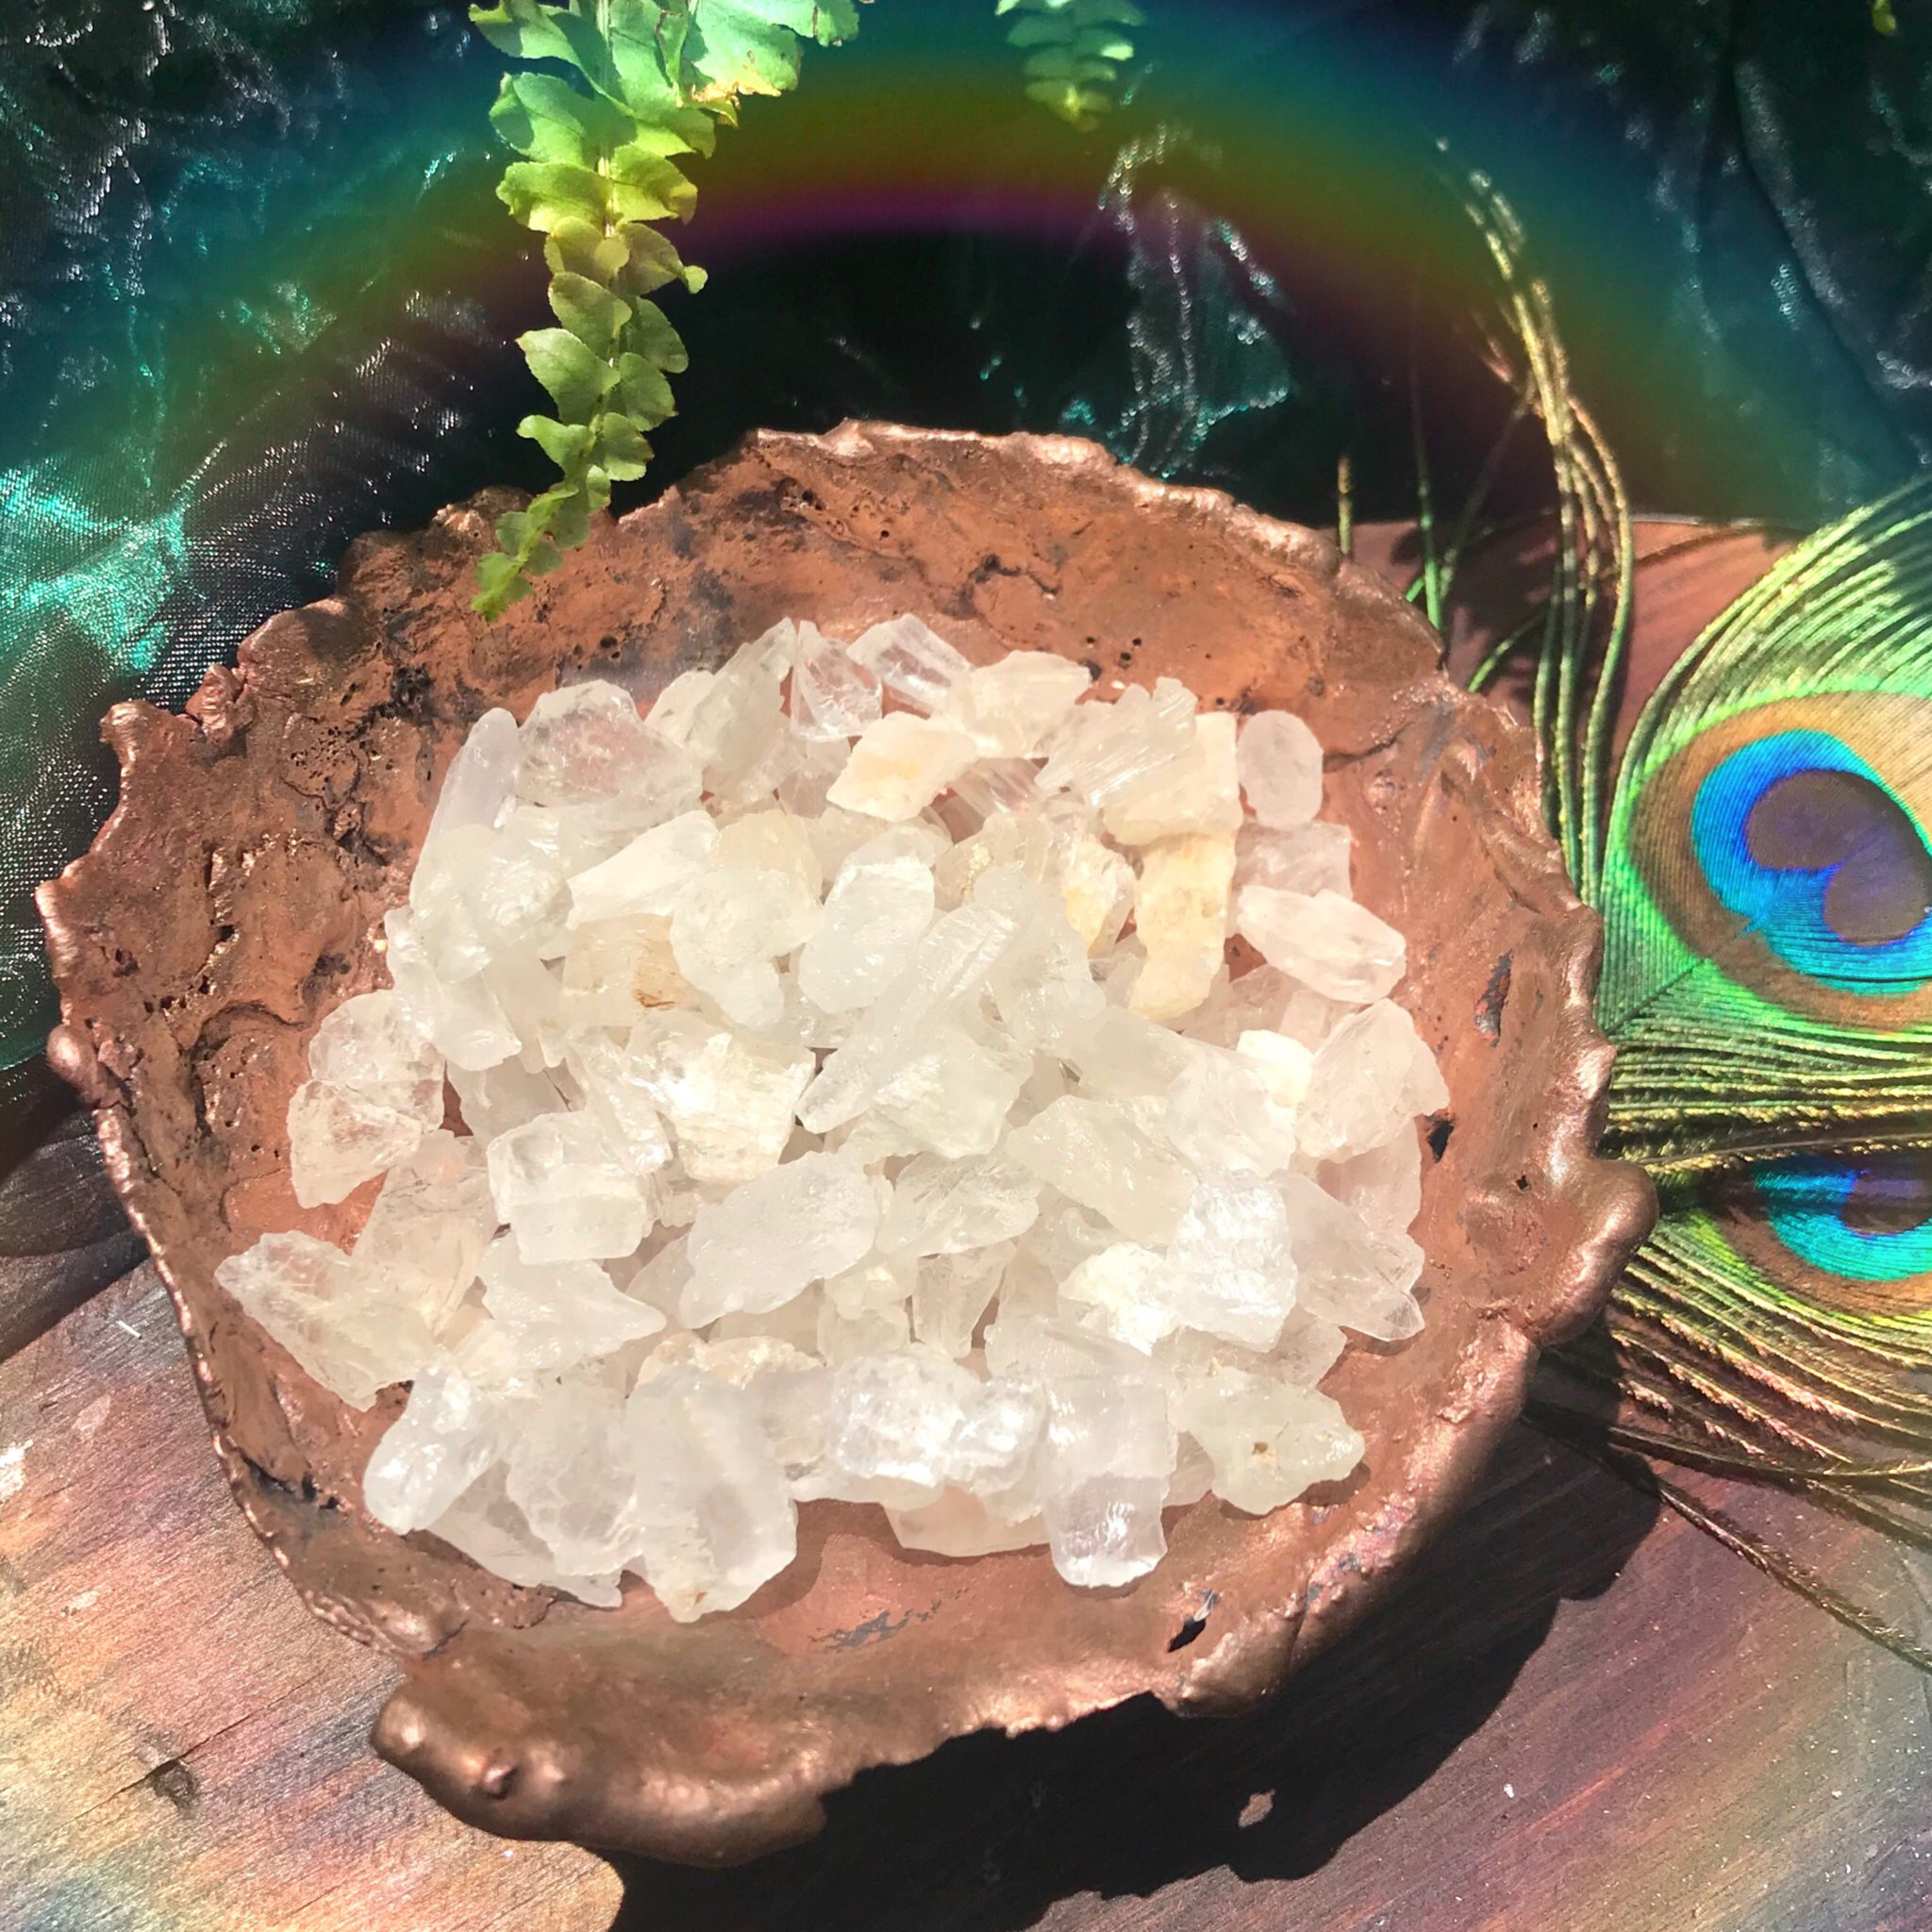 Natural petalite for angelic protection and access to the higher realms